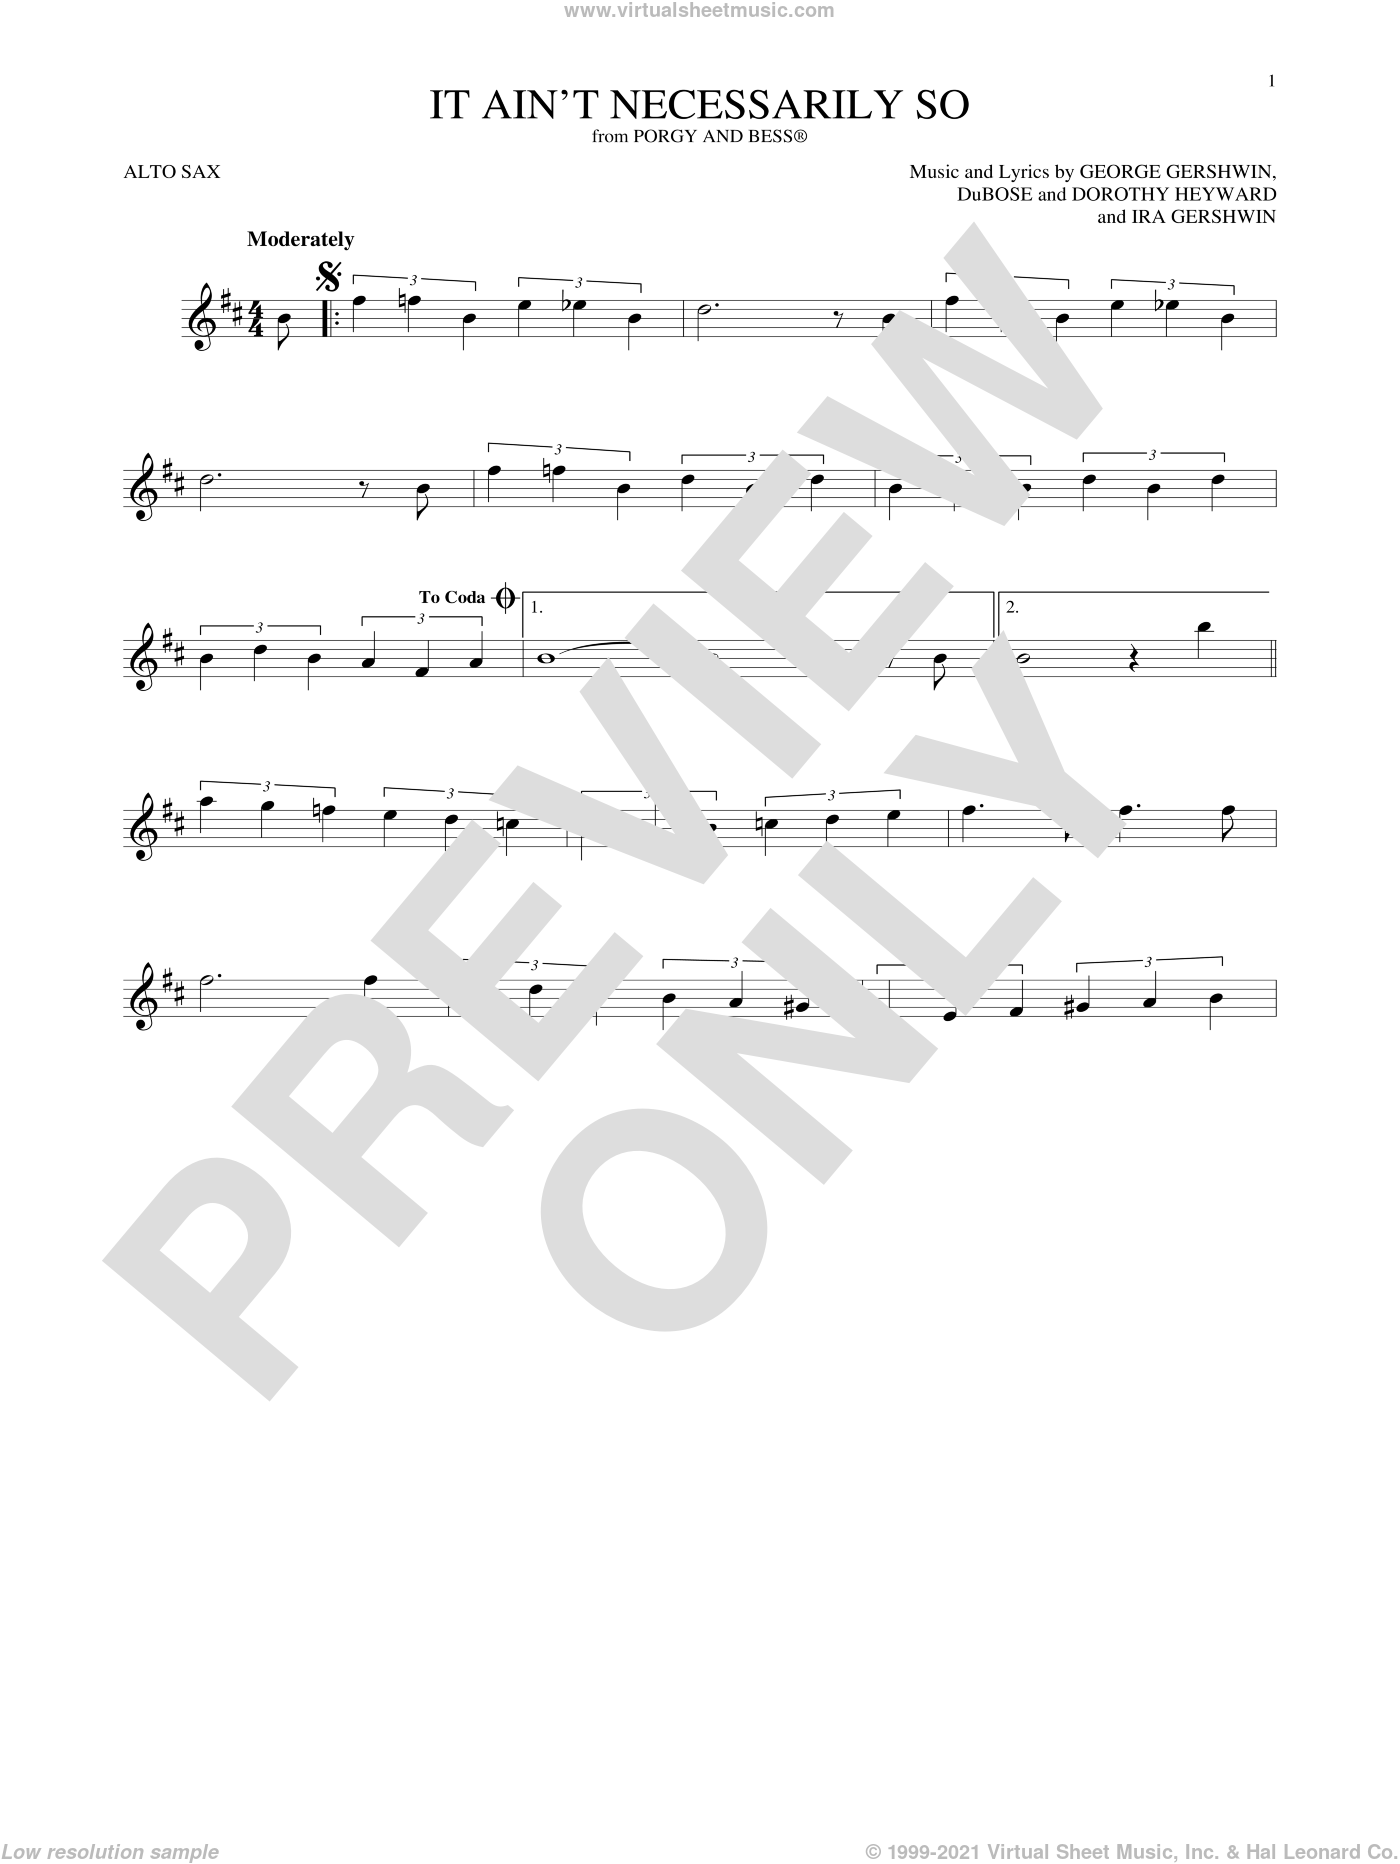 It Ain't Necessarily So sheet music for alto saxophone solo by George Gershwin, Dorothy Heyward, DuBose Heyward and Ira Gershwin, intermediate skill level